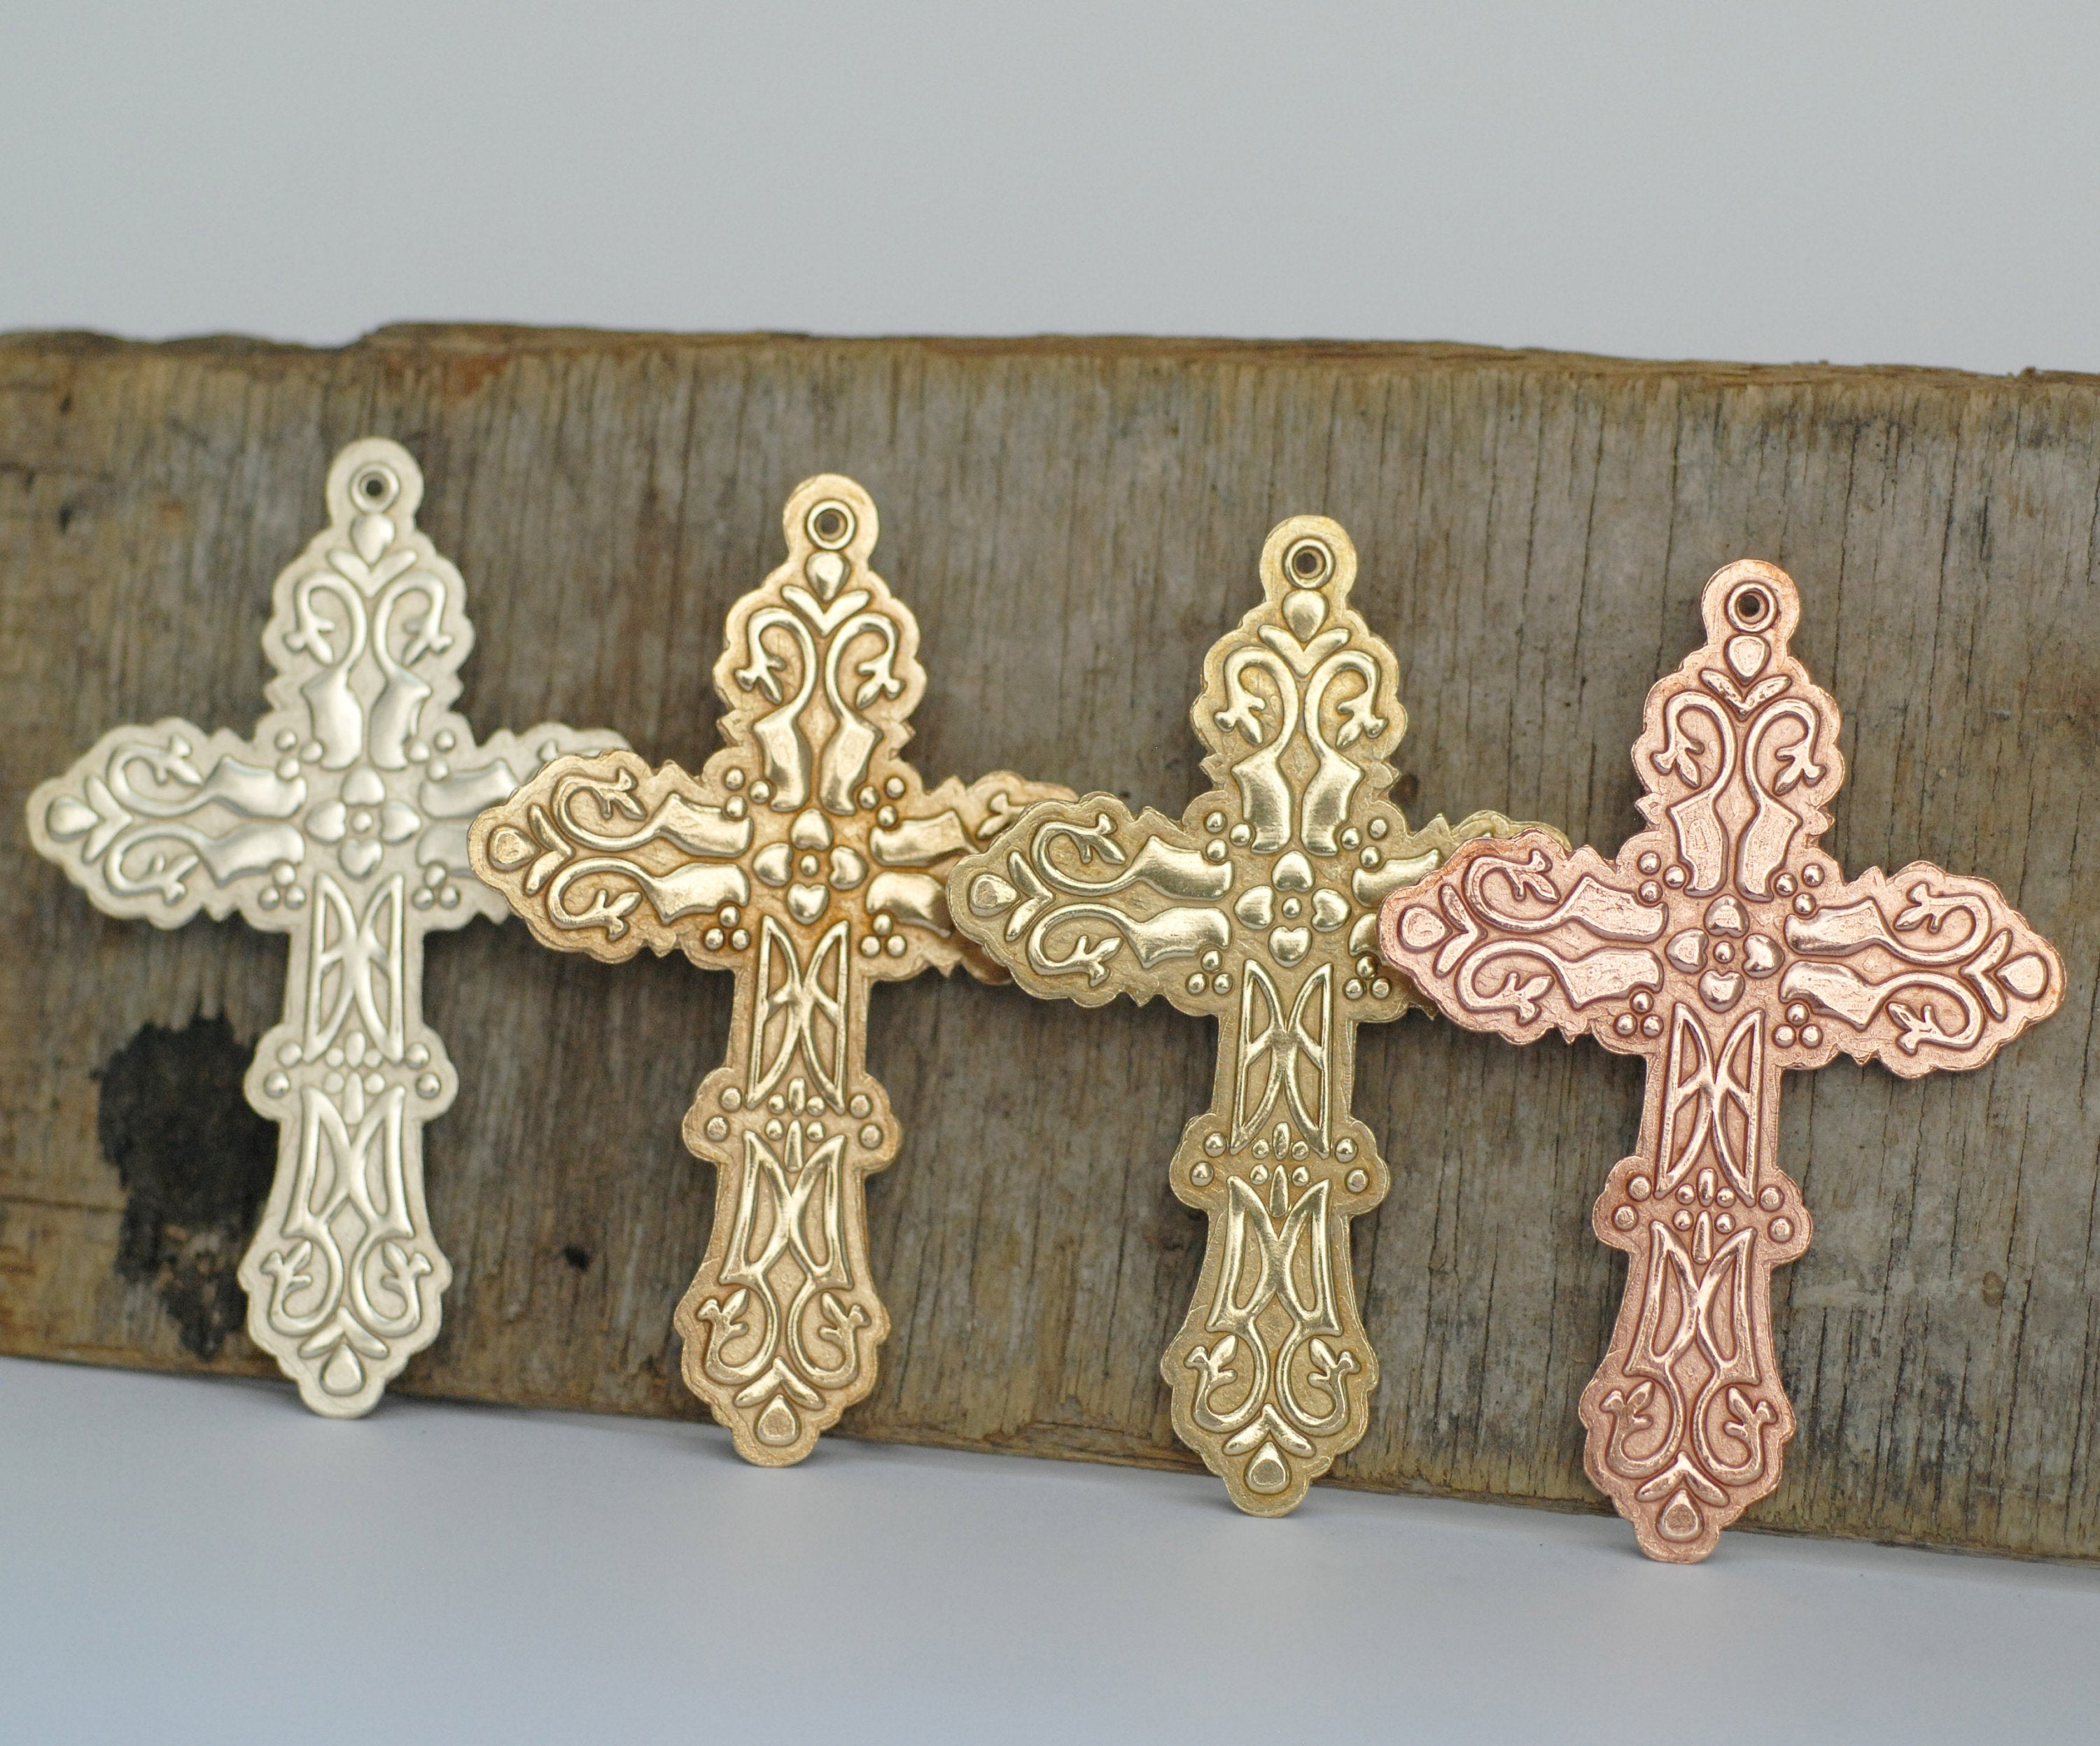 Cross pendant blank w/ floral texture Antique design, copper, brass, bronze, nickel silver 22g 20g with hole